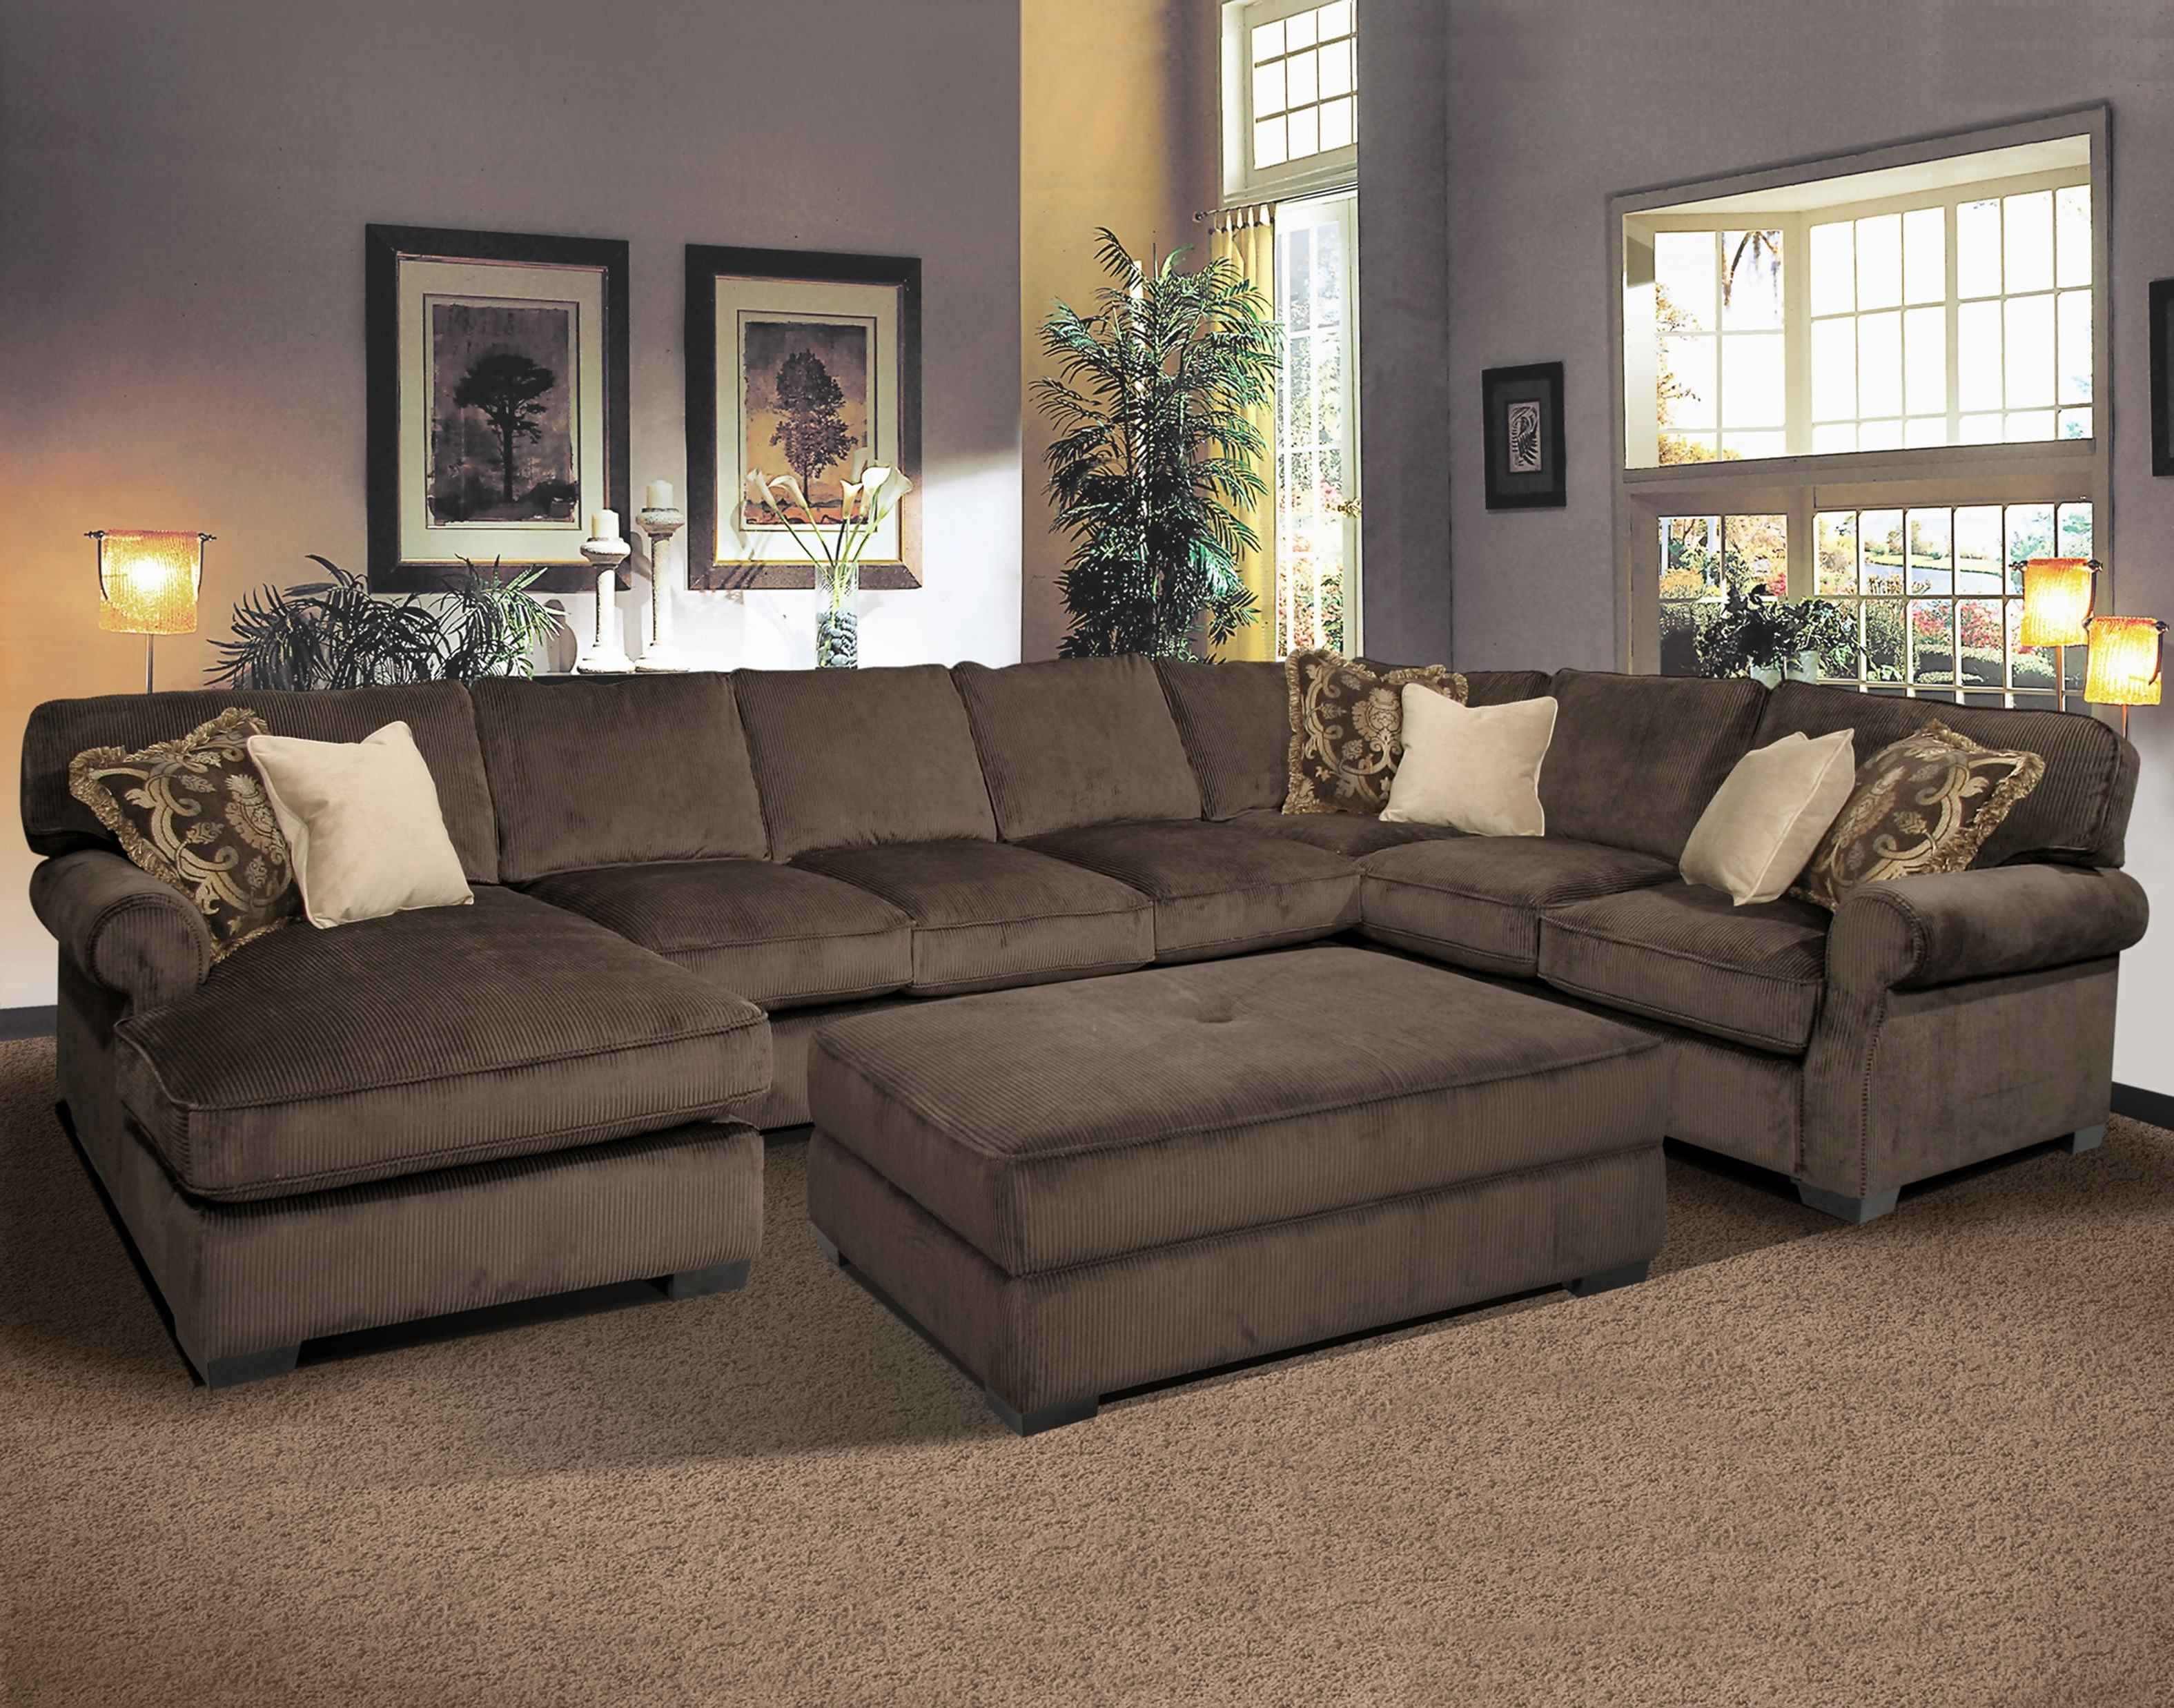 Pittsburgh Sectional Sofas With Regard To Most Up To Date Big And Comfy Grand Island Large, 7 Seat Sectional Sofa With Right (View 14 of 20)